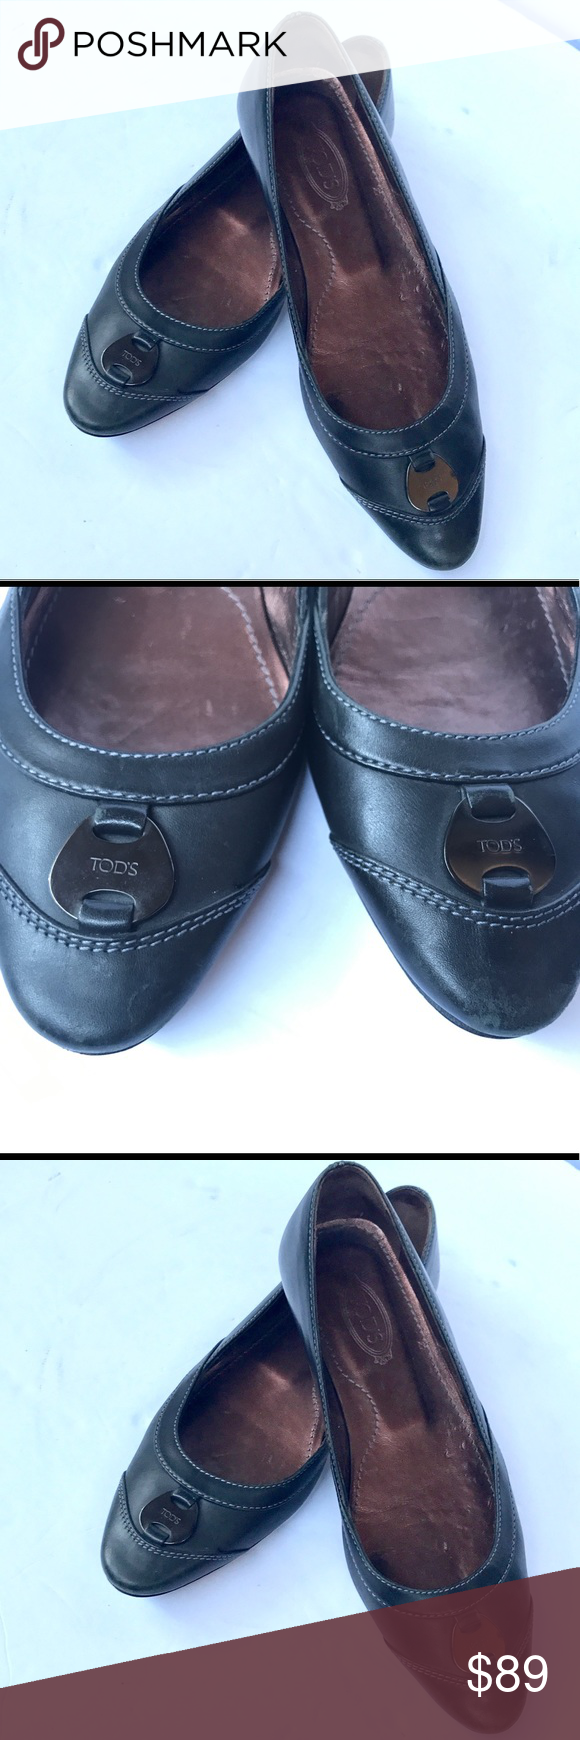 Tod's Grey Leather Flats Sz 6.5 Super pretty.. Some obvious signs of wear, but over all vey beautiful and in great condition. ❤️💛💙💜 Tod's Shoes Flats & Loafers